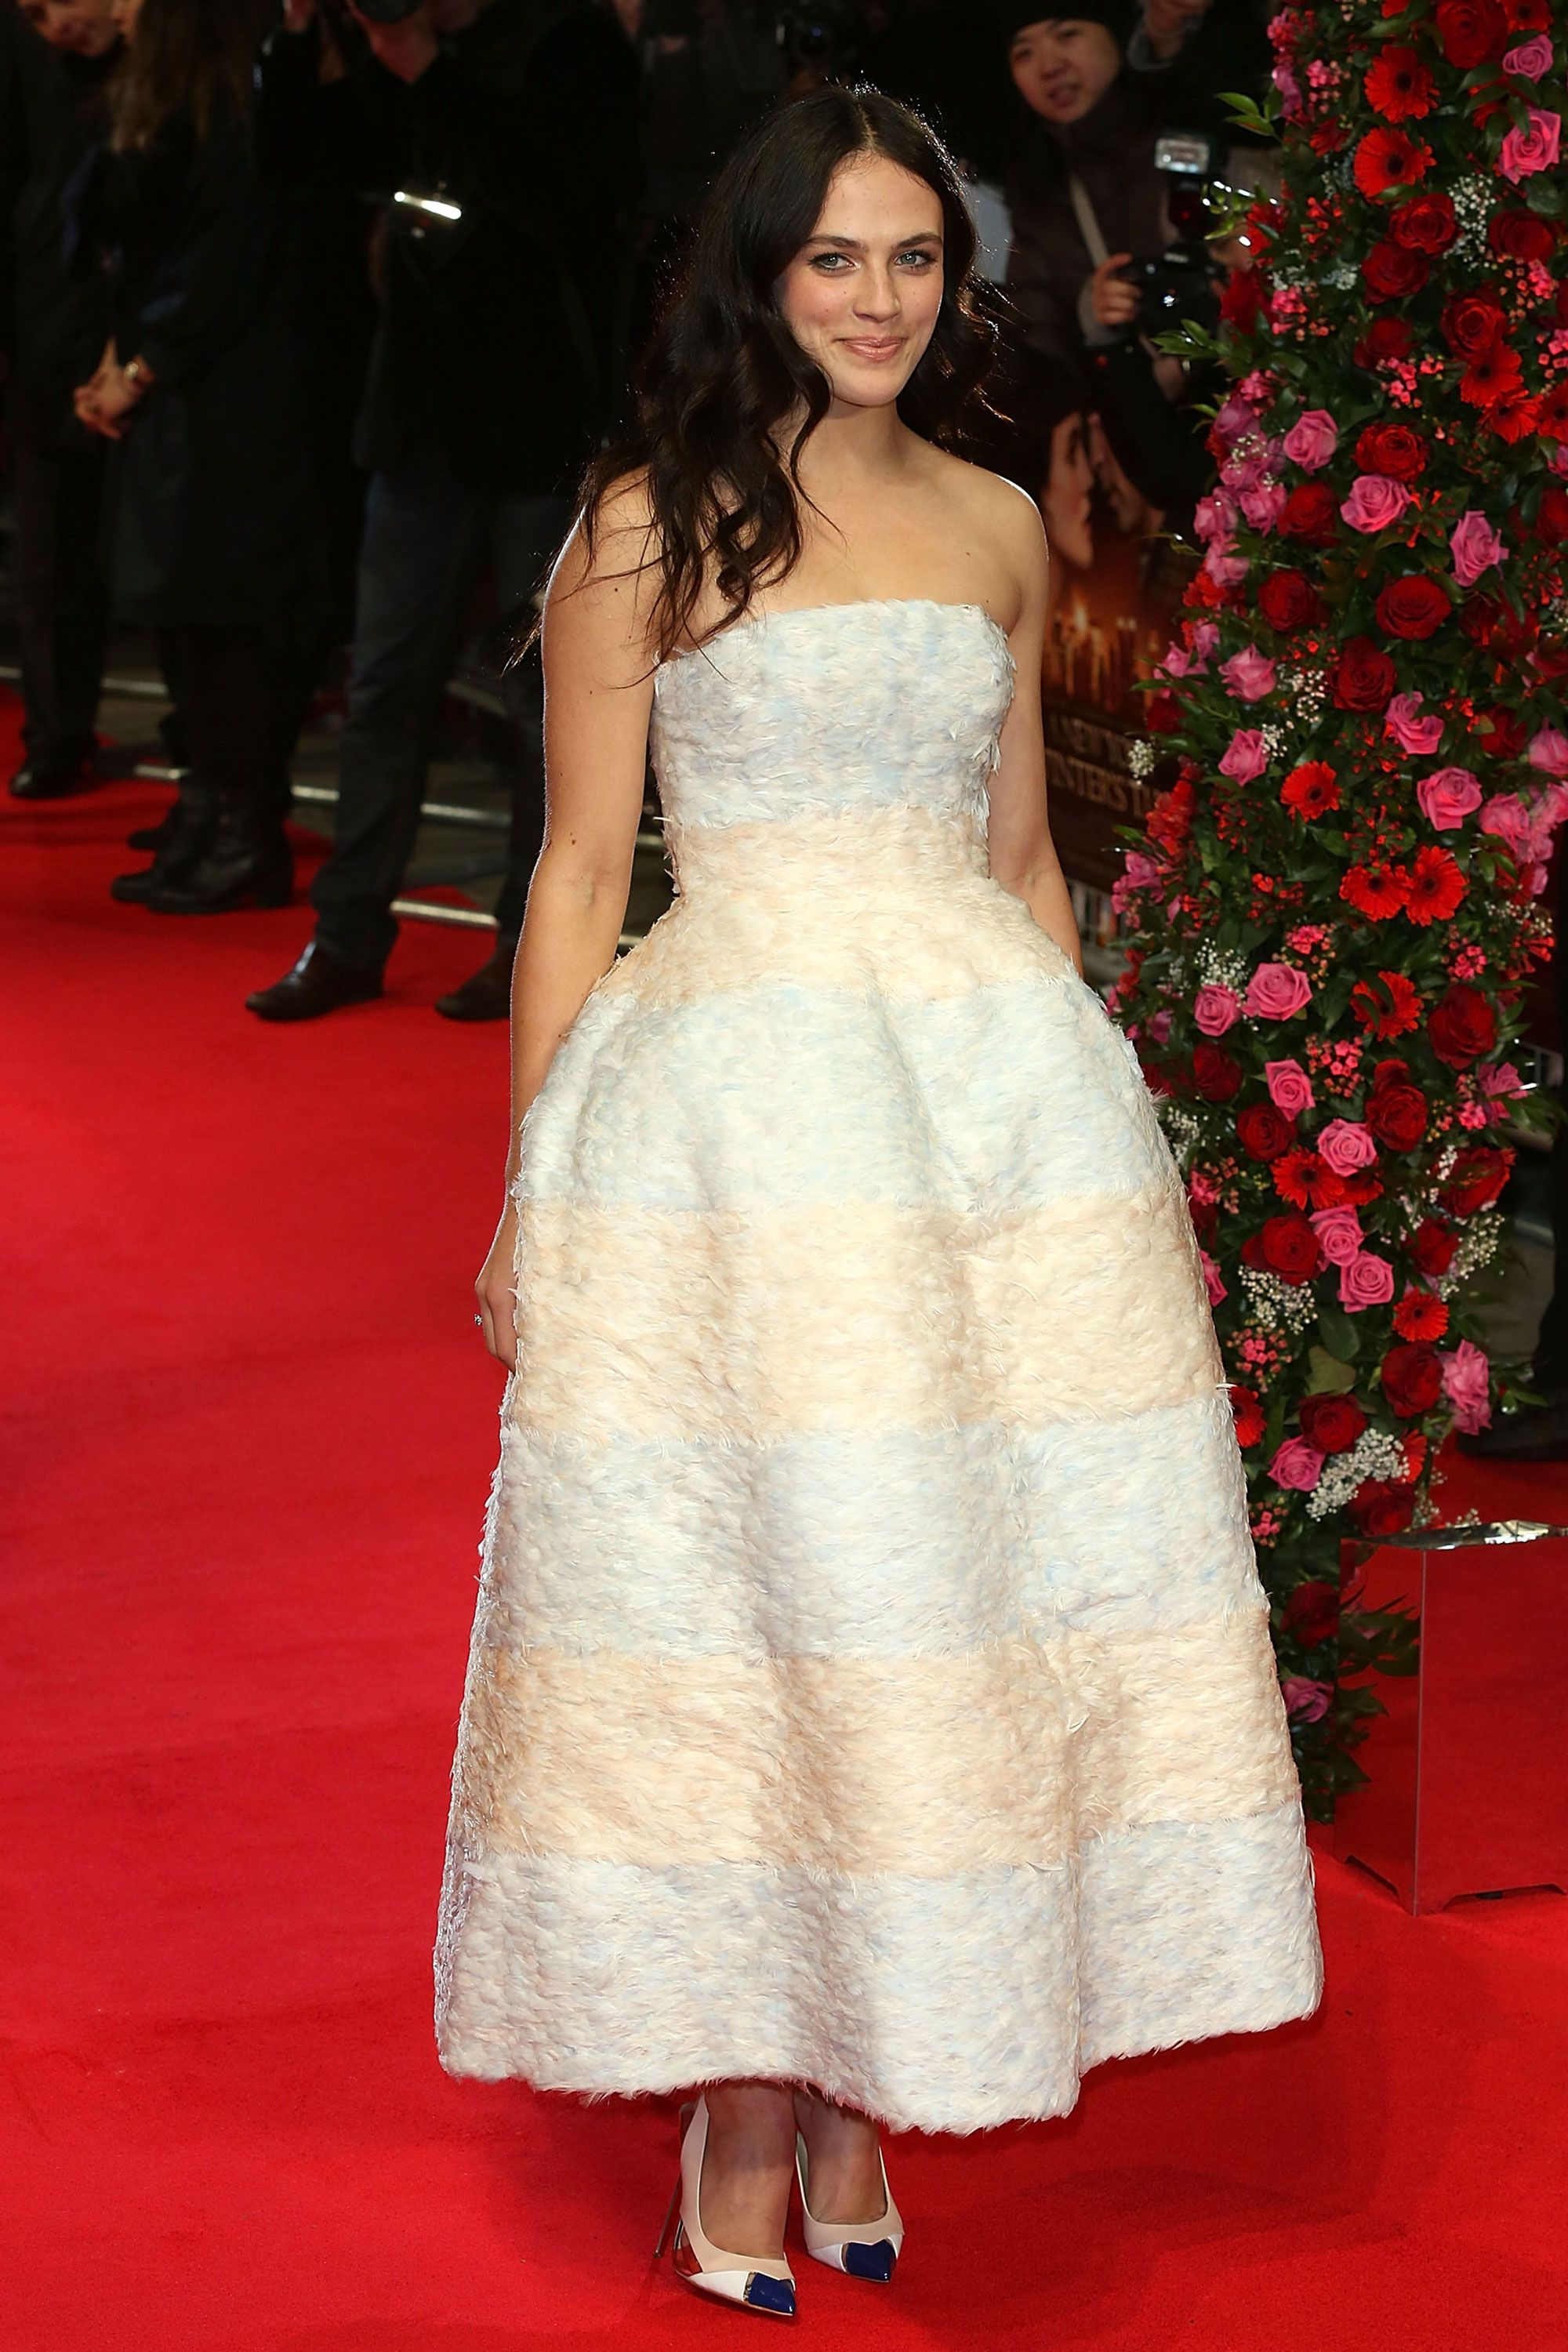 Jessica brown findlay from downton abbey